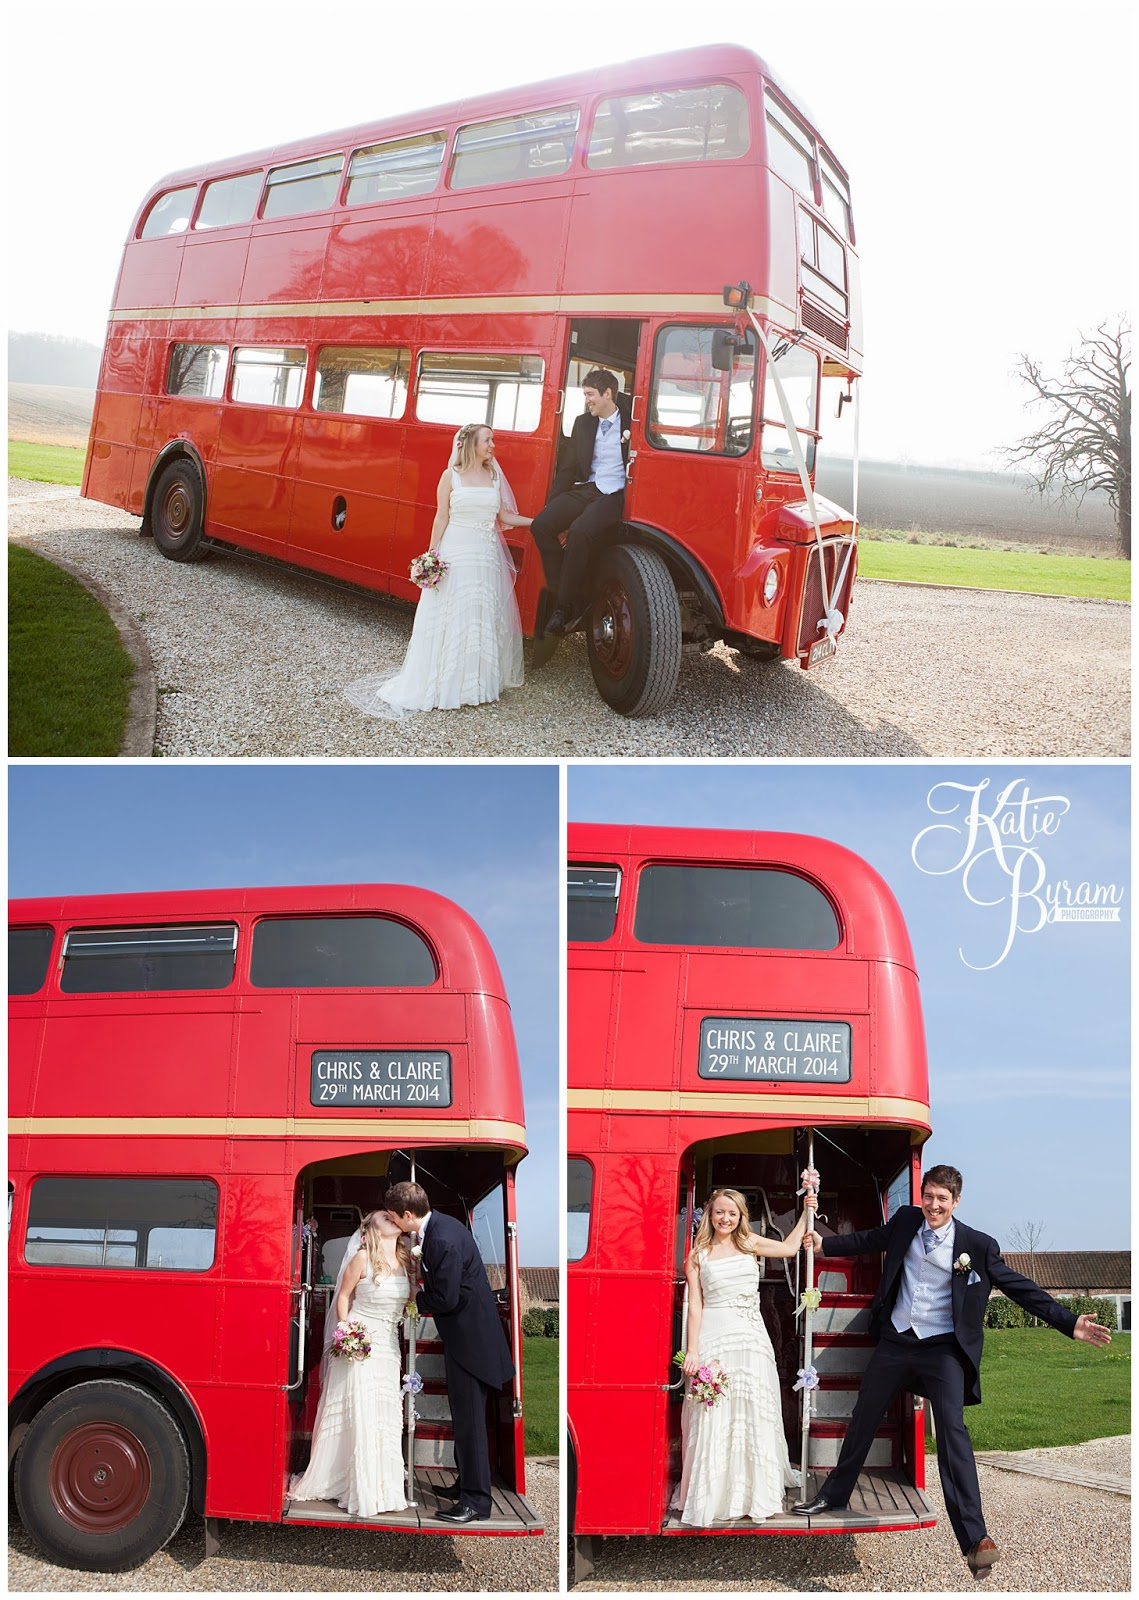 vintage wedding bus, yorkshire heritage bus company,priory cottages wedding, priory cottages, priory cottages wetherby, yorkshire wedding photographer, wedding venue yorkshire, jenny packham, katie byram photography, paperwhite flowers, spring wedding, rustic wedding, marquee wedding, cottage wedding, countryside wedding